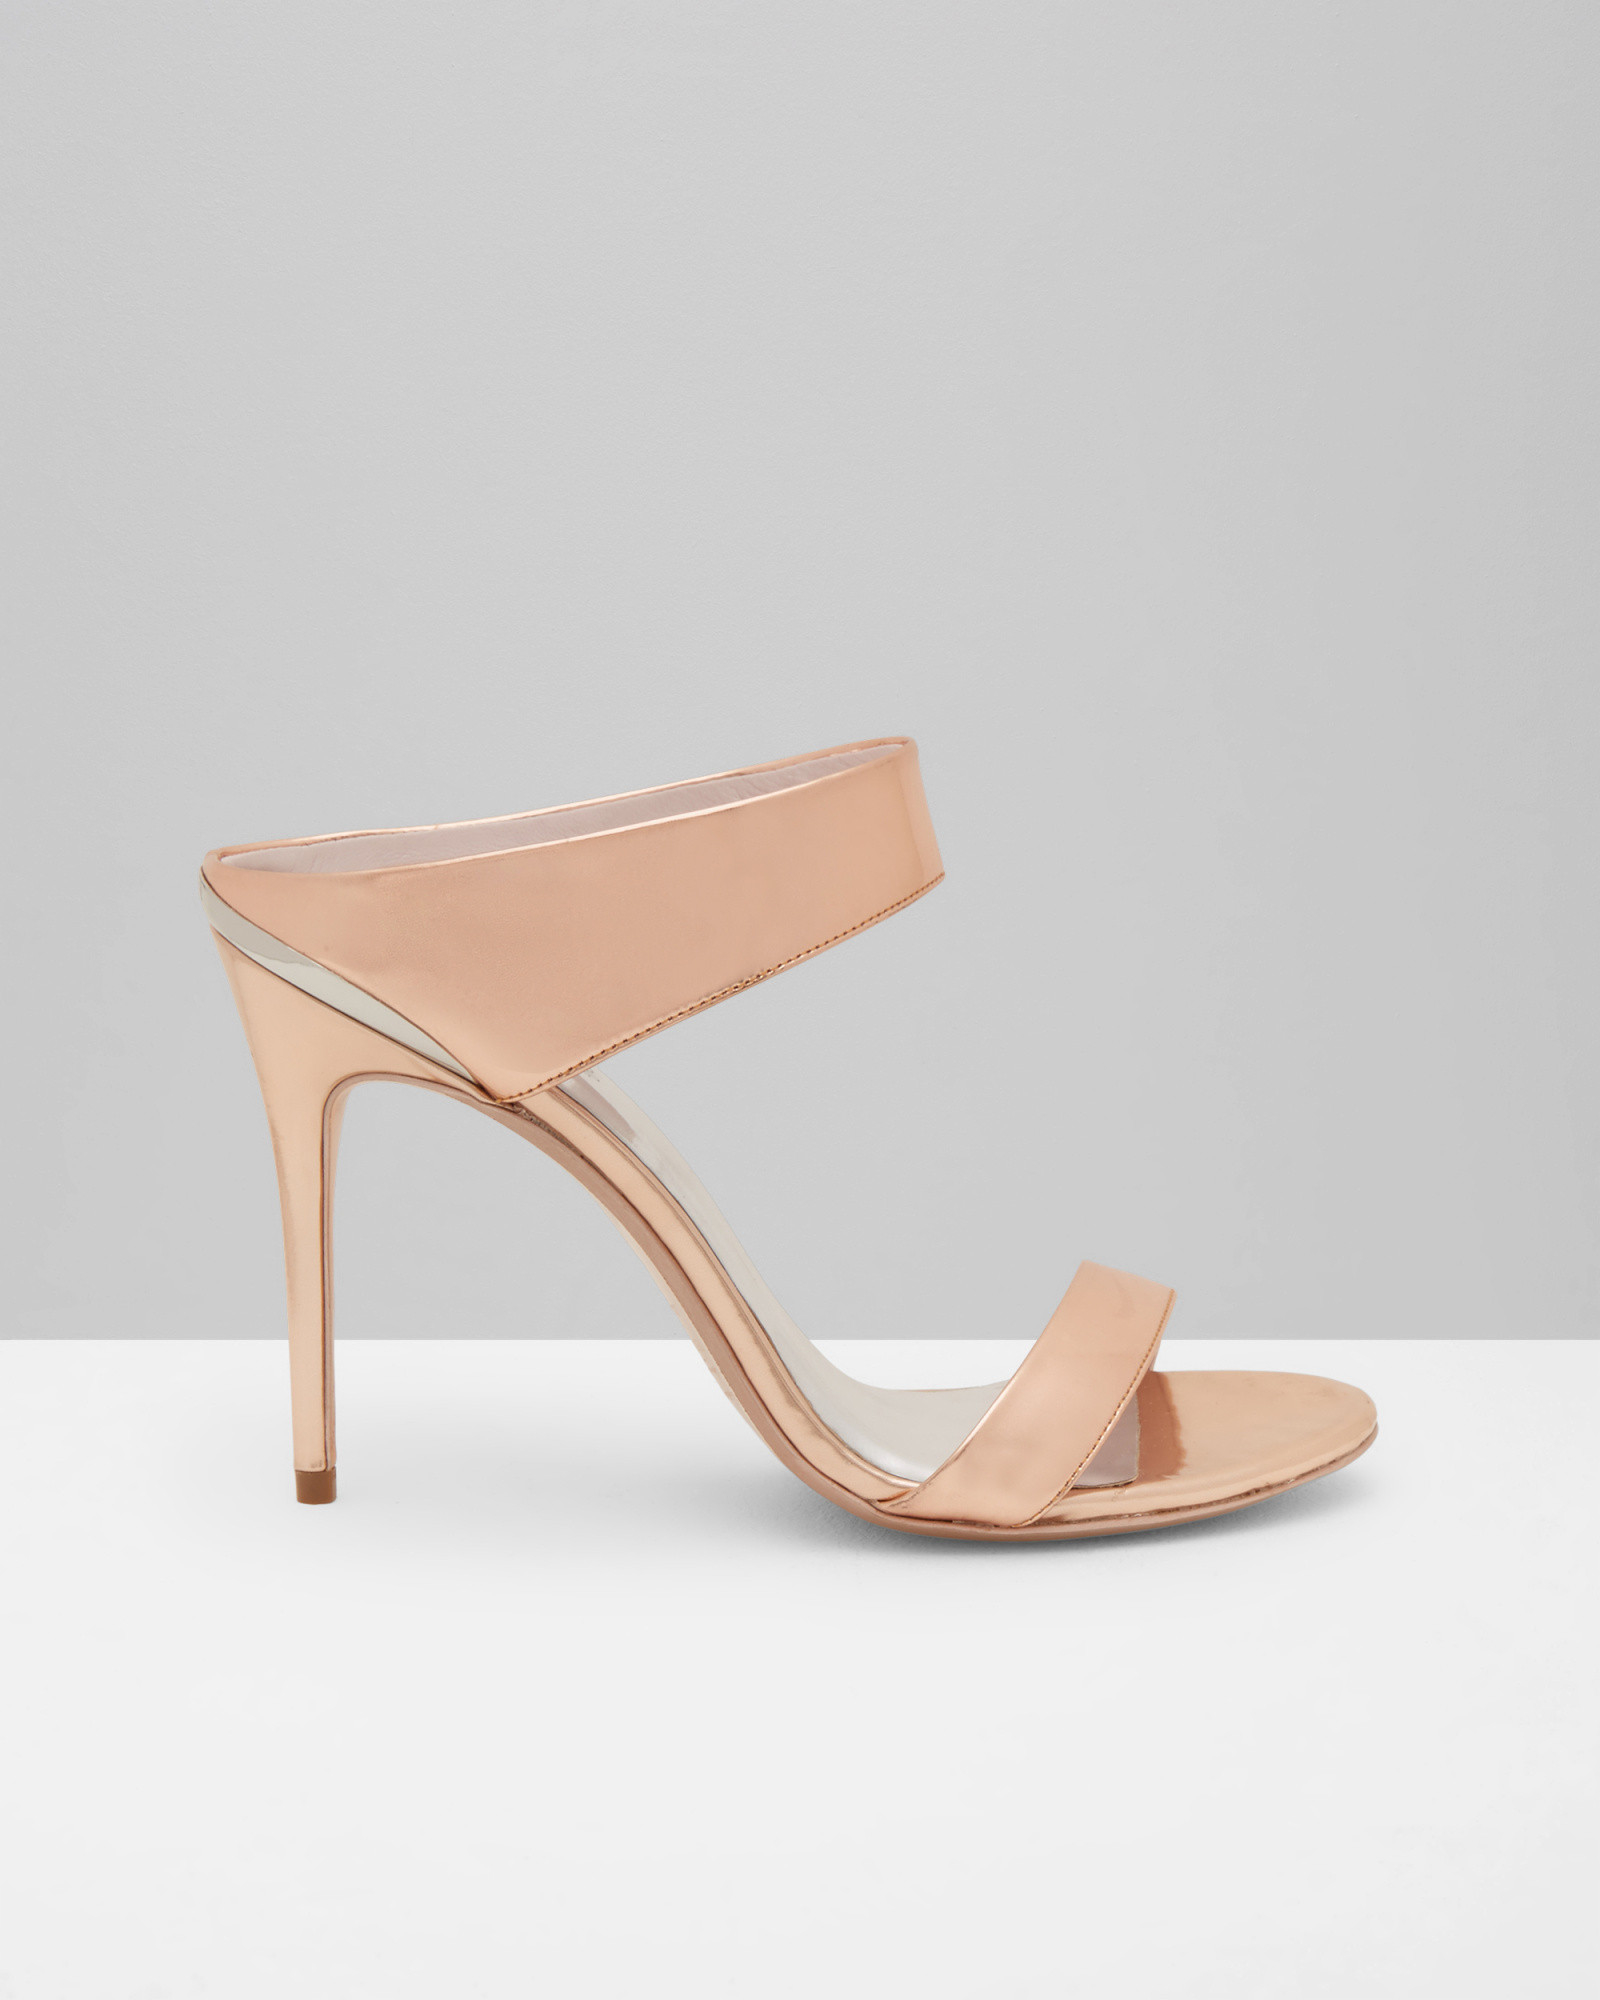 3038a0e1fc18 Lyst - Ted Baker Metallic Mule Sandals in Pink